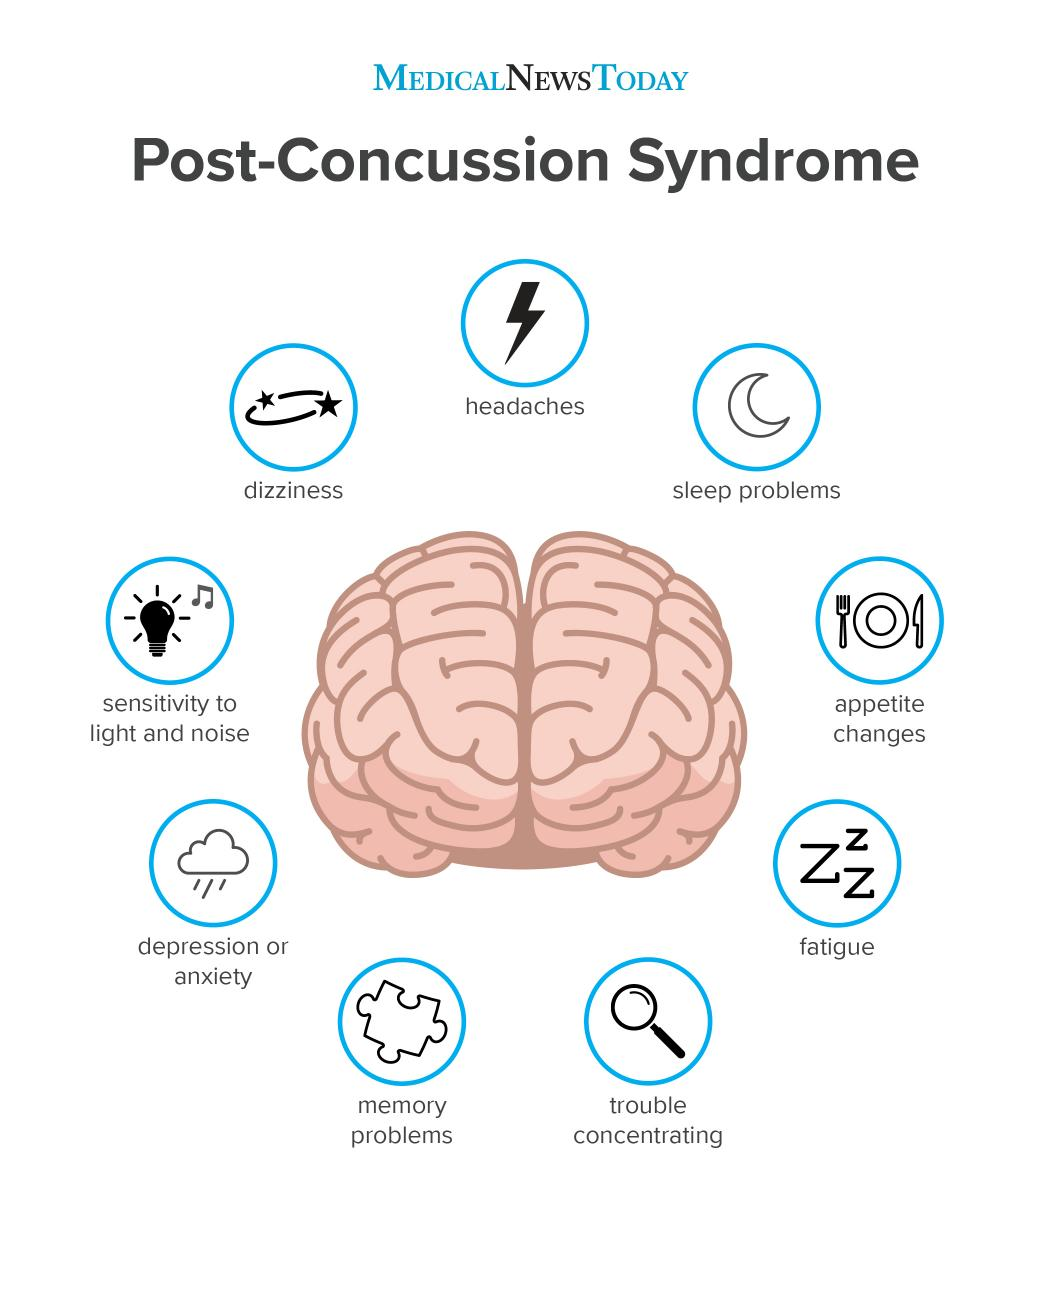 an infographic of Post-Concussion syndrome.